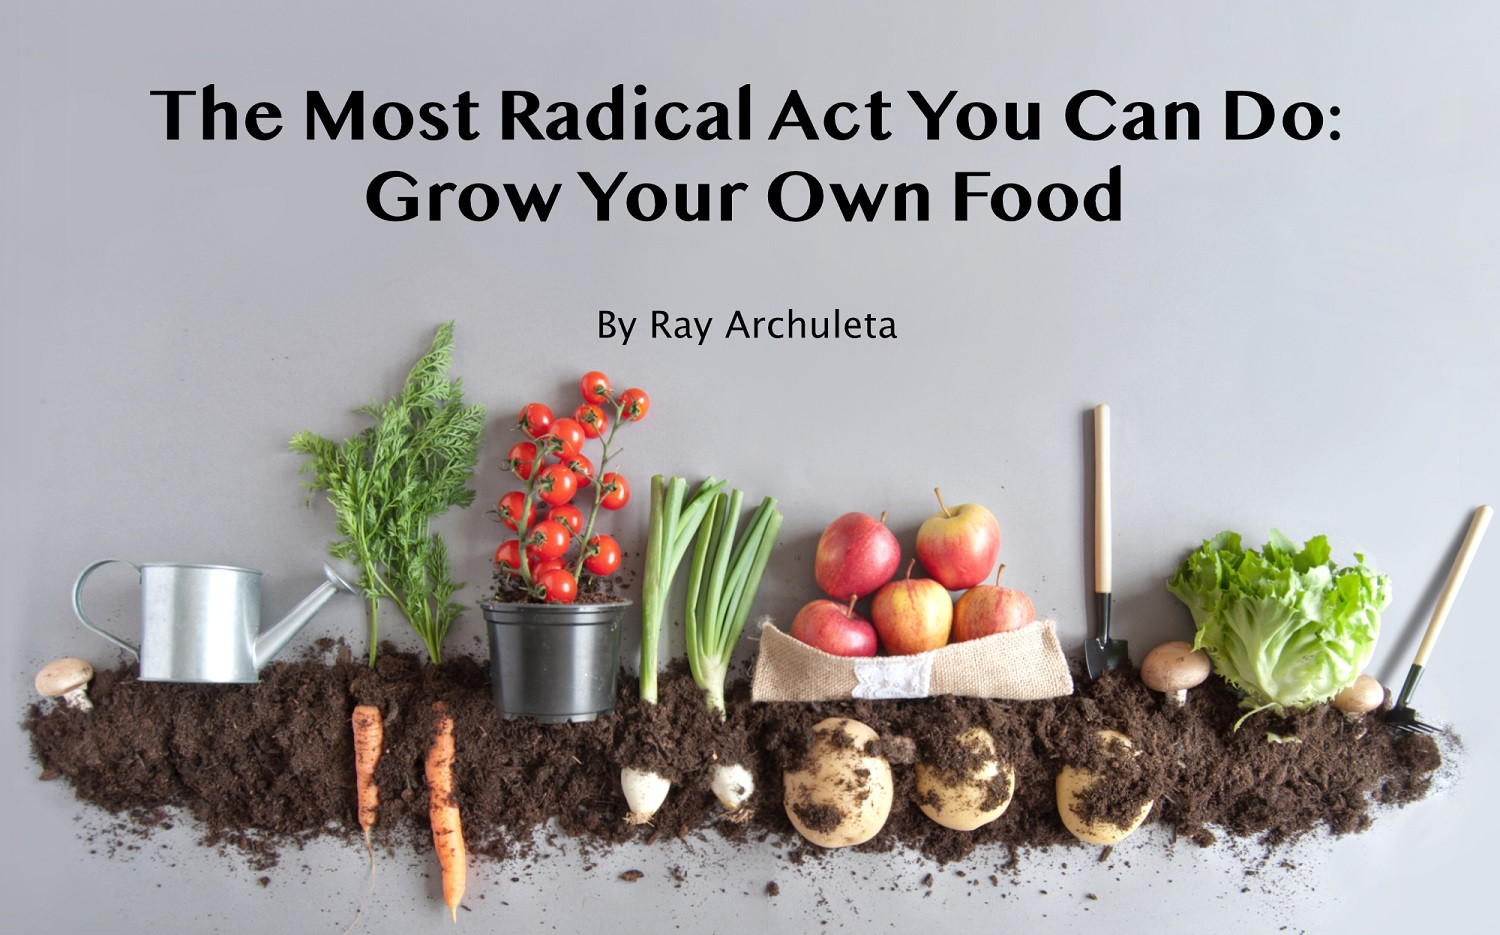 The Most Radical Act You Can Do: Grow Your Own Food!